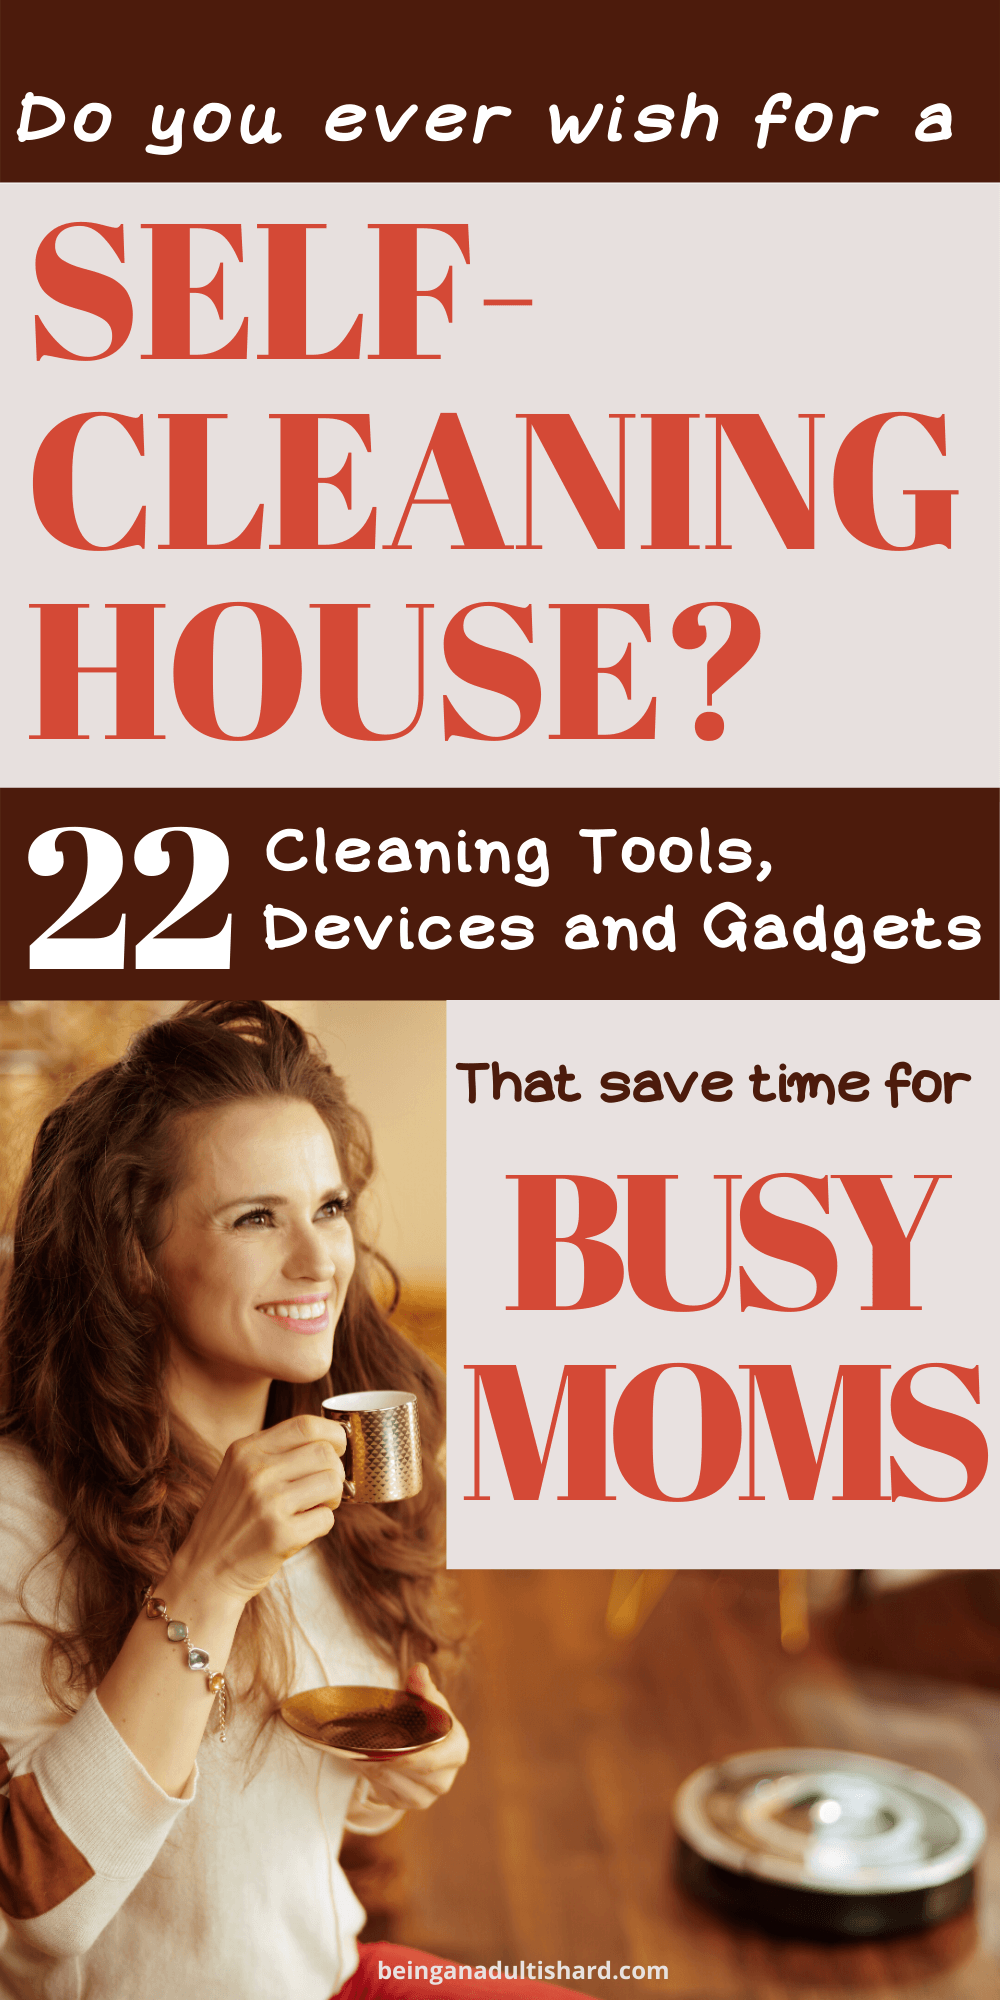 Pin of Woman enjoying coffee while her robot vacuum cleaning tool cleans for her with text do you wish you had a self-cleaning house? 22 Cleaning tools devices and gadgets that save time for busy moms